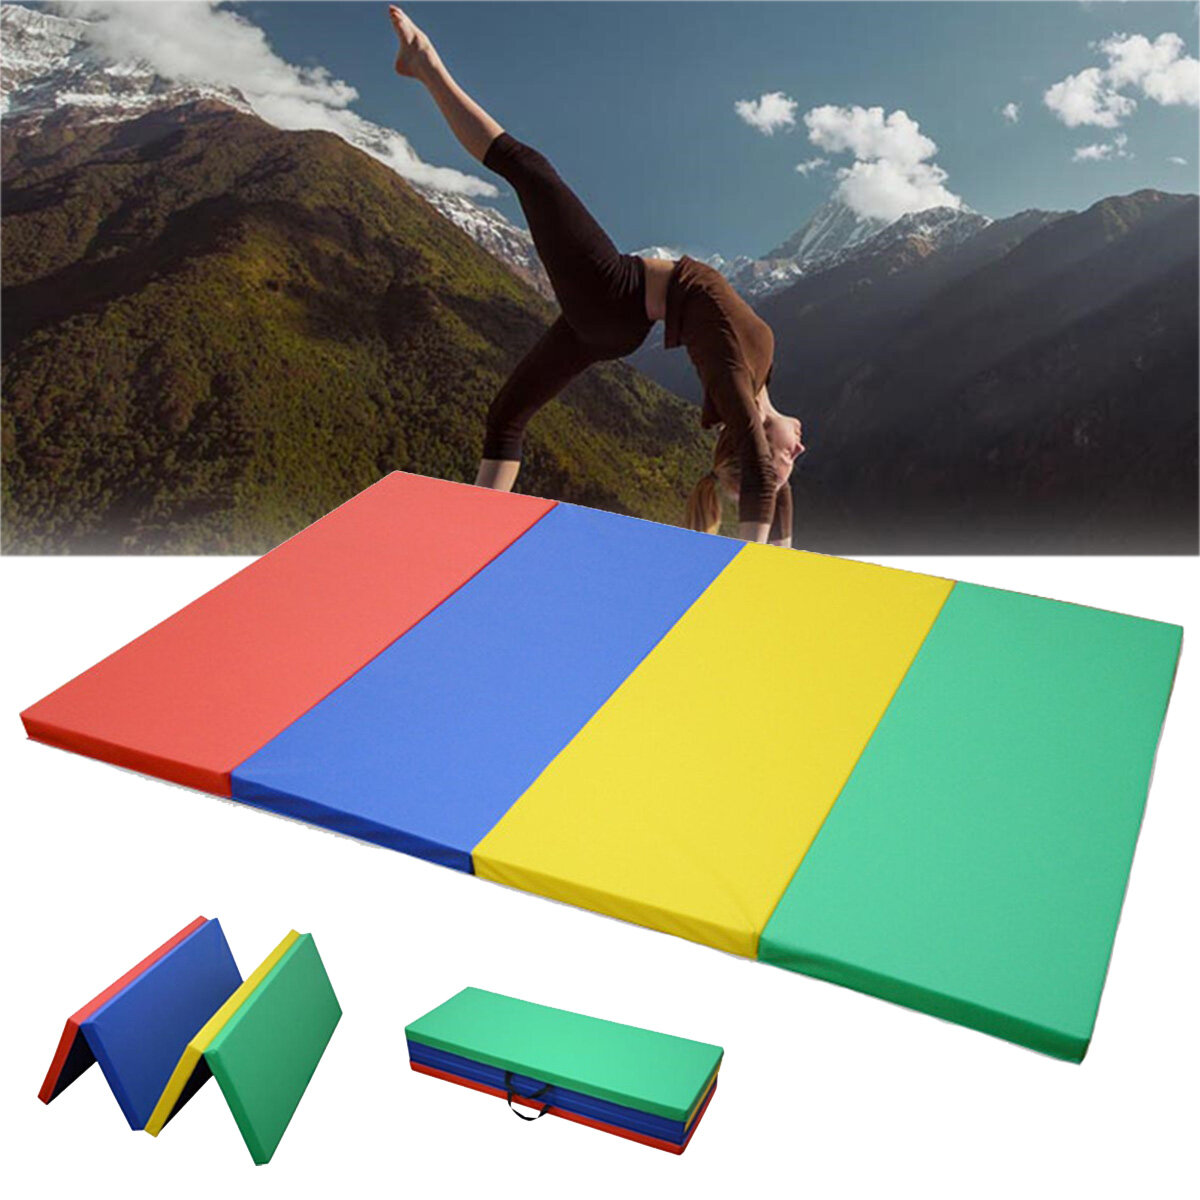 70x47x1.97inch Folding Gymnastics Panel Gym Exercise Yoga Pad Tumbling Fitness Mat